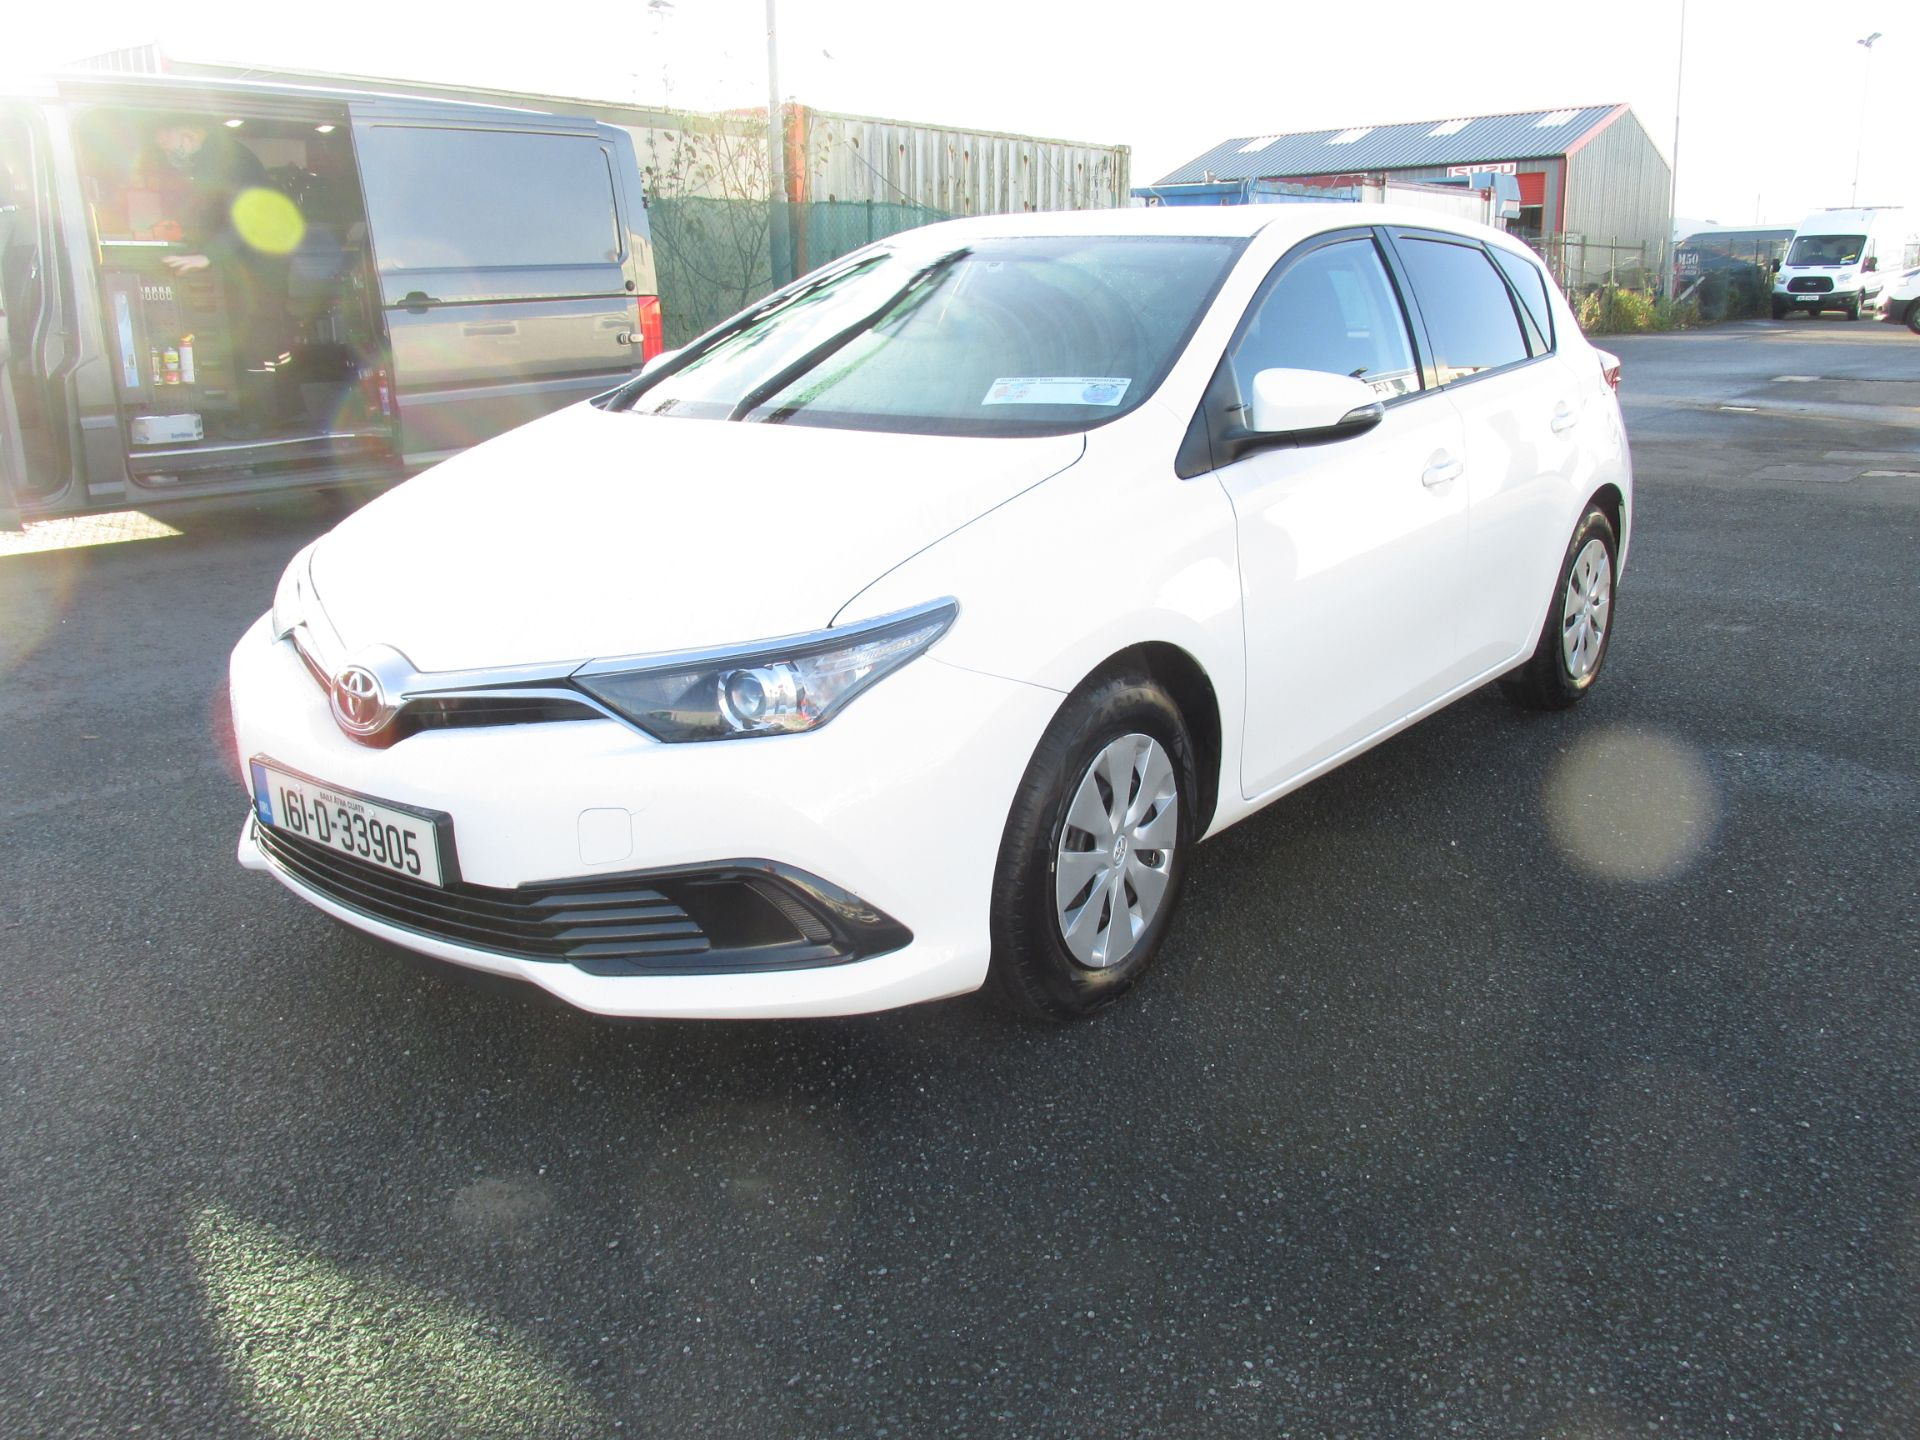 2016 Toyota Auris 1.4d-4d Terra 4DR click and collect call sales for more info (161D33905) Image 3